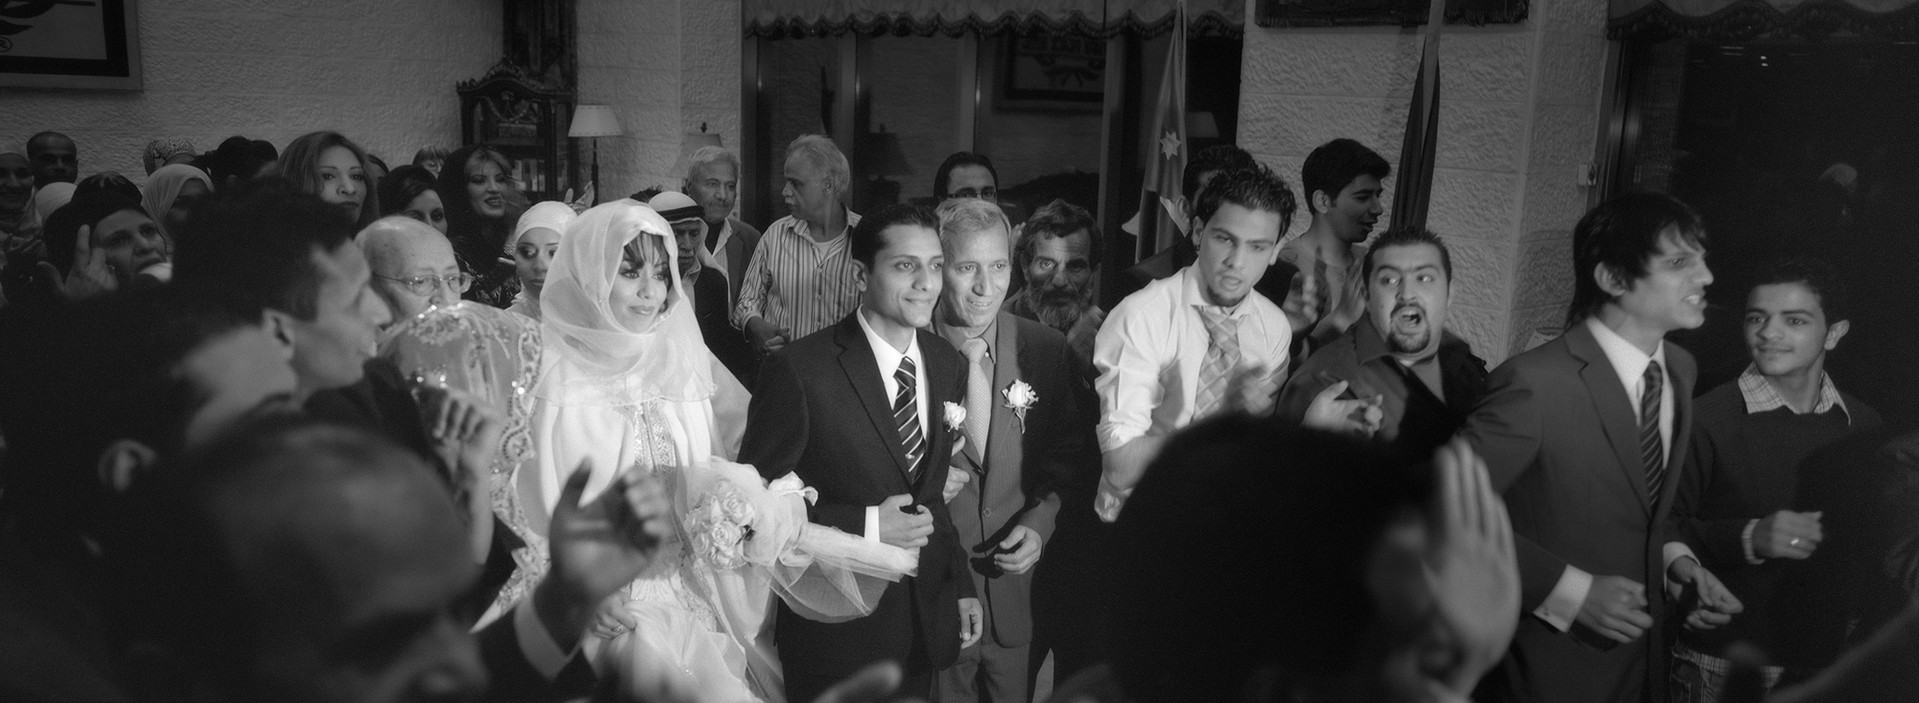 Jordanian Wedding, Amman, Jordan 2009